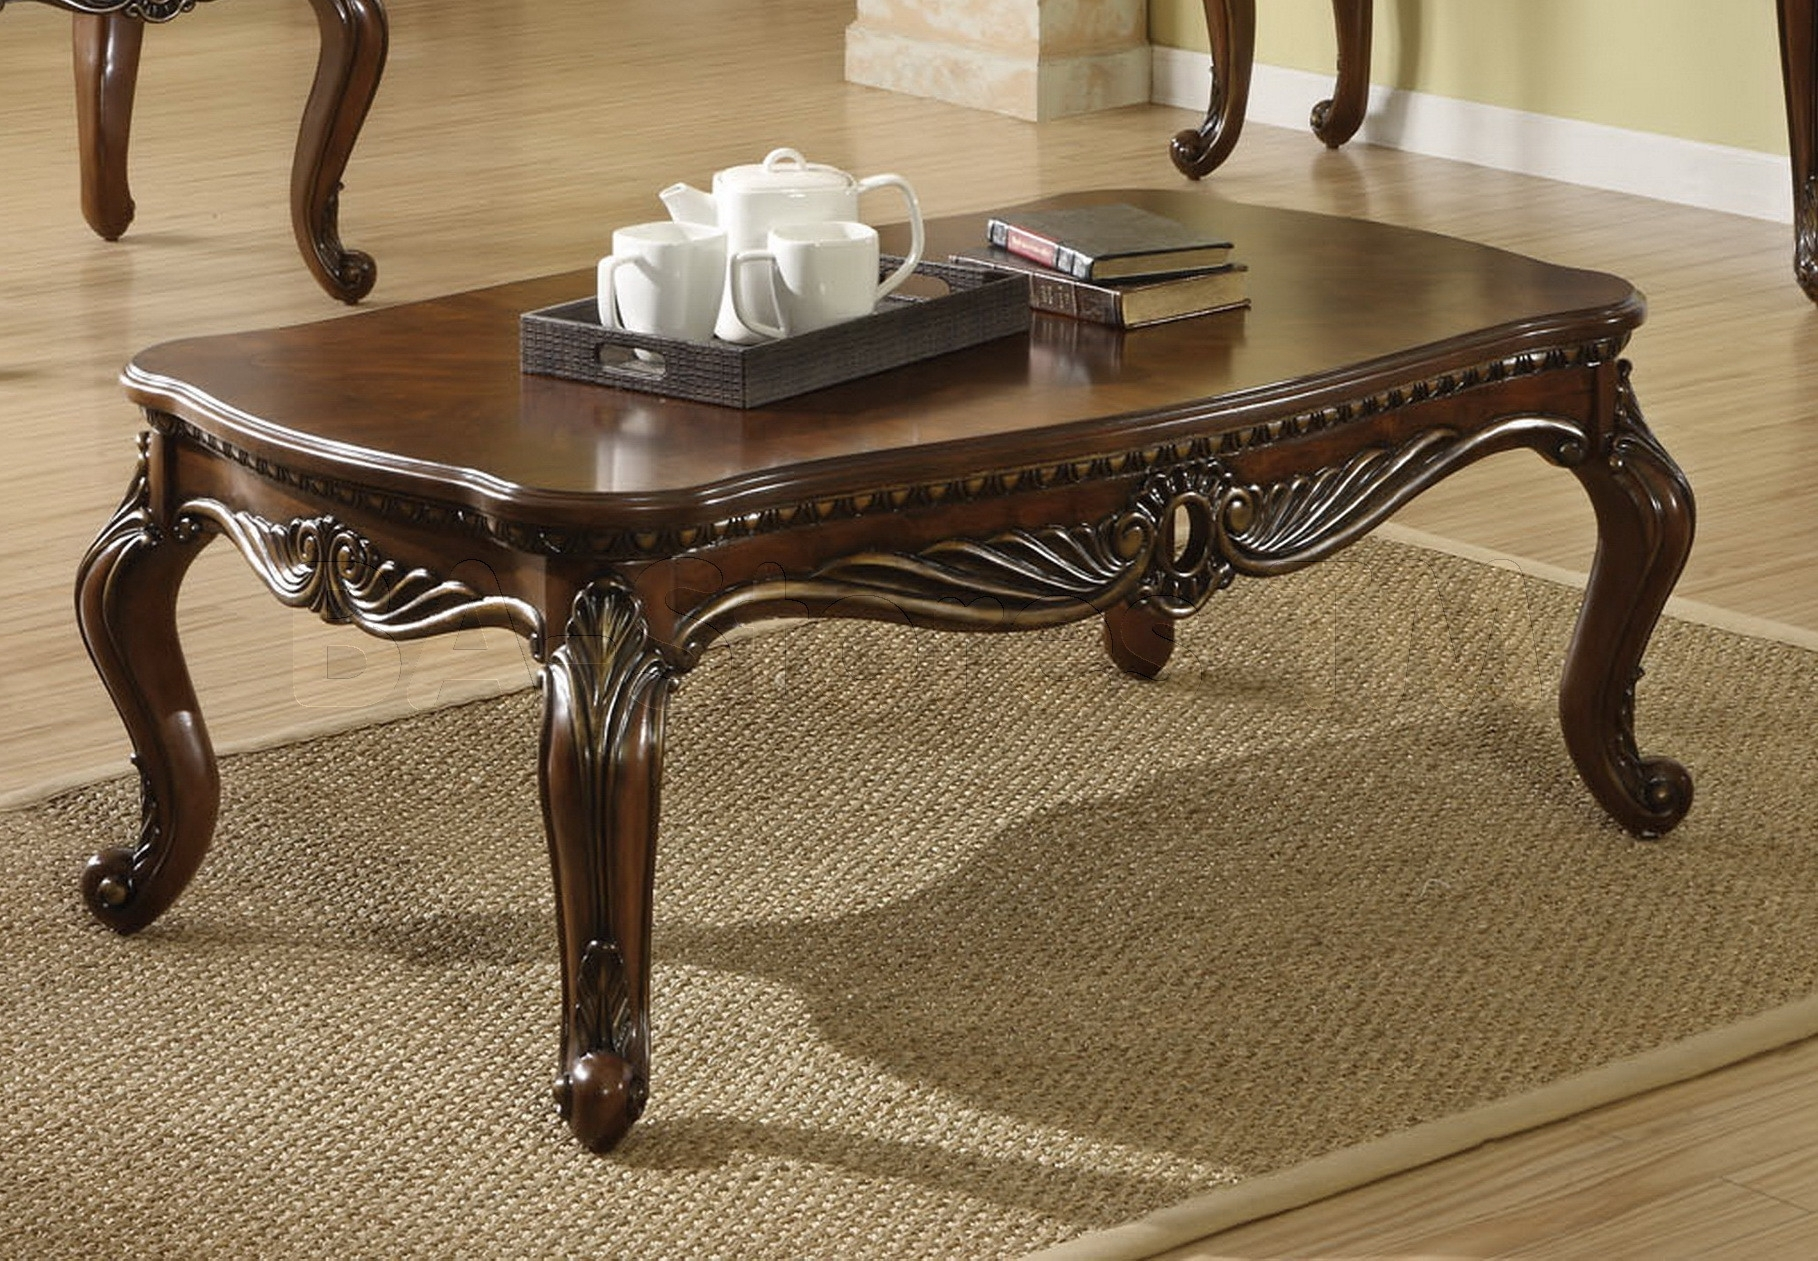 Coffee Table: Traditional Wood Coffee Tables   Therefugecoffee pertaining to Traditional Coffee Tables (Image 9 of 30)